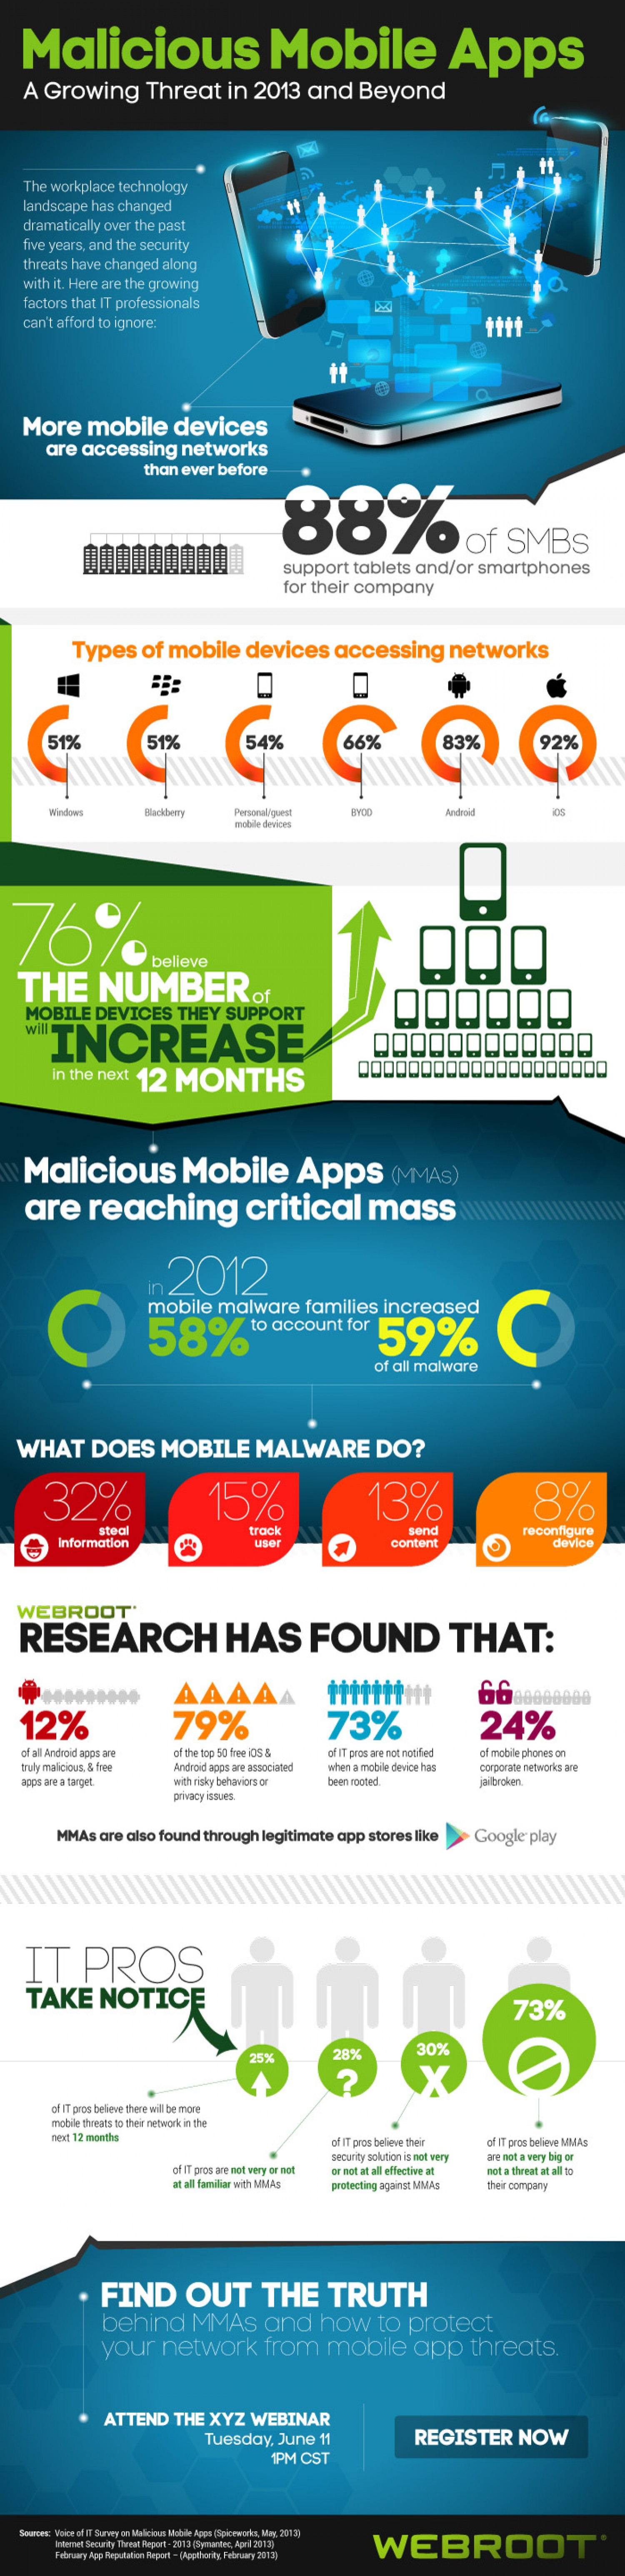 malicious-mobile-apps_529393a770f28_w1500